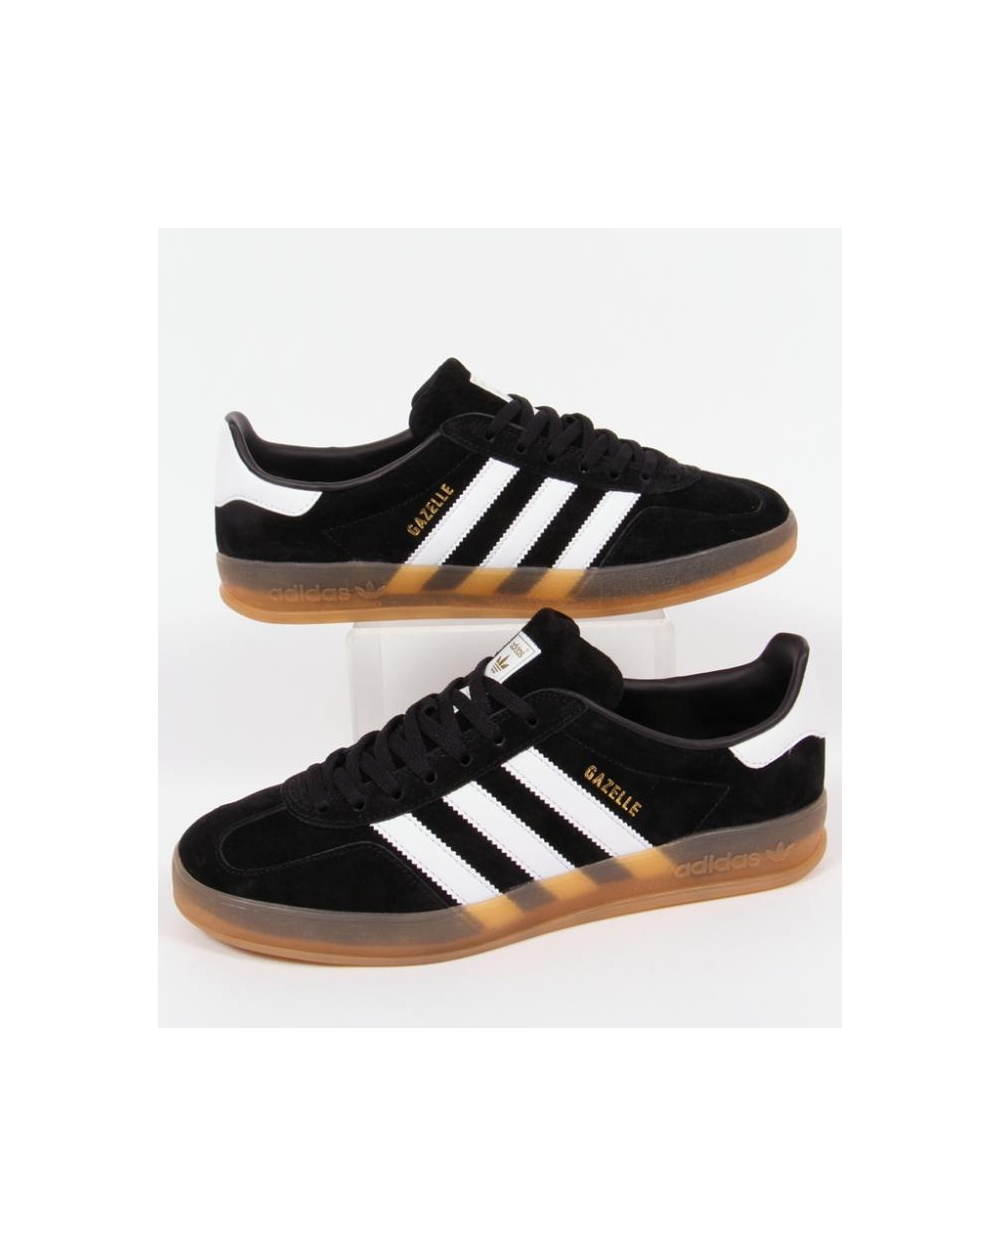 35c1a6c4867 Adidas Gazelle Indoor Core Black White Gum